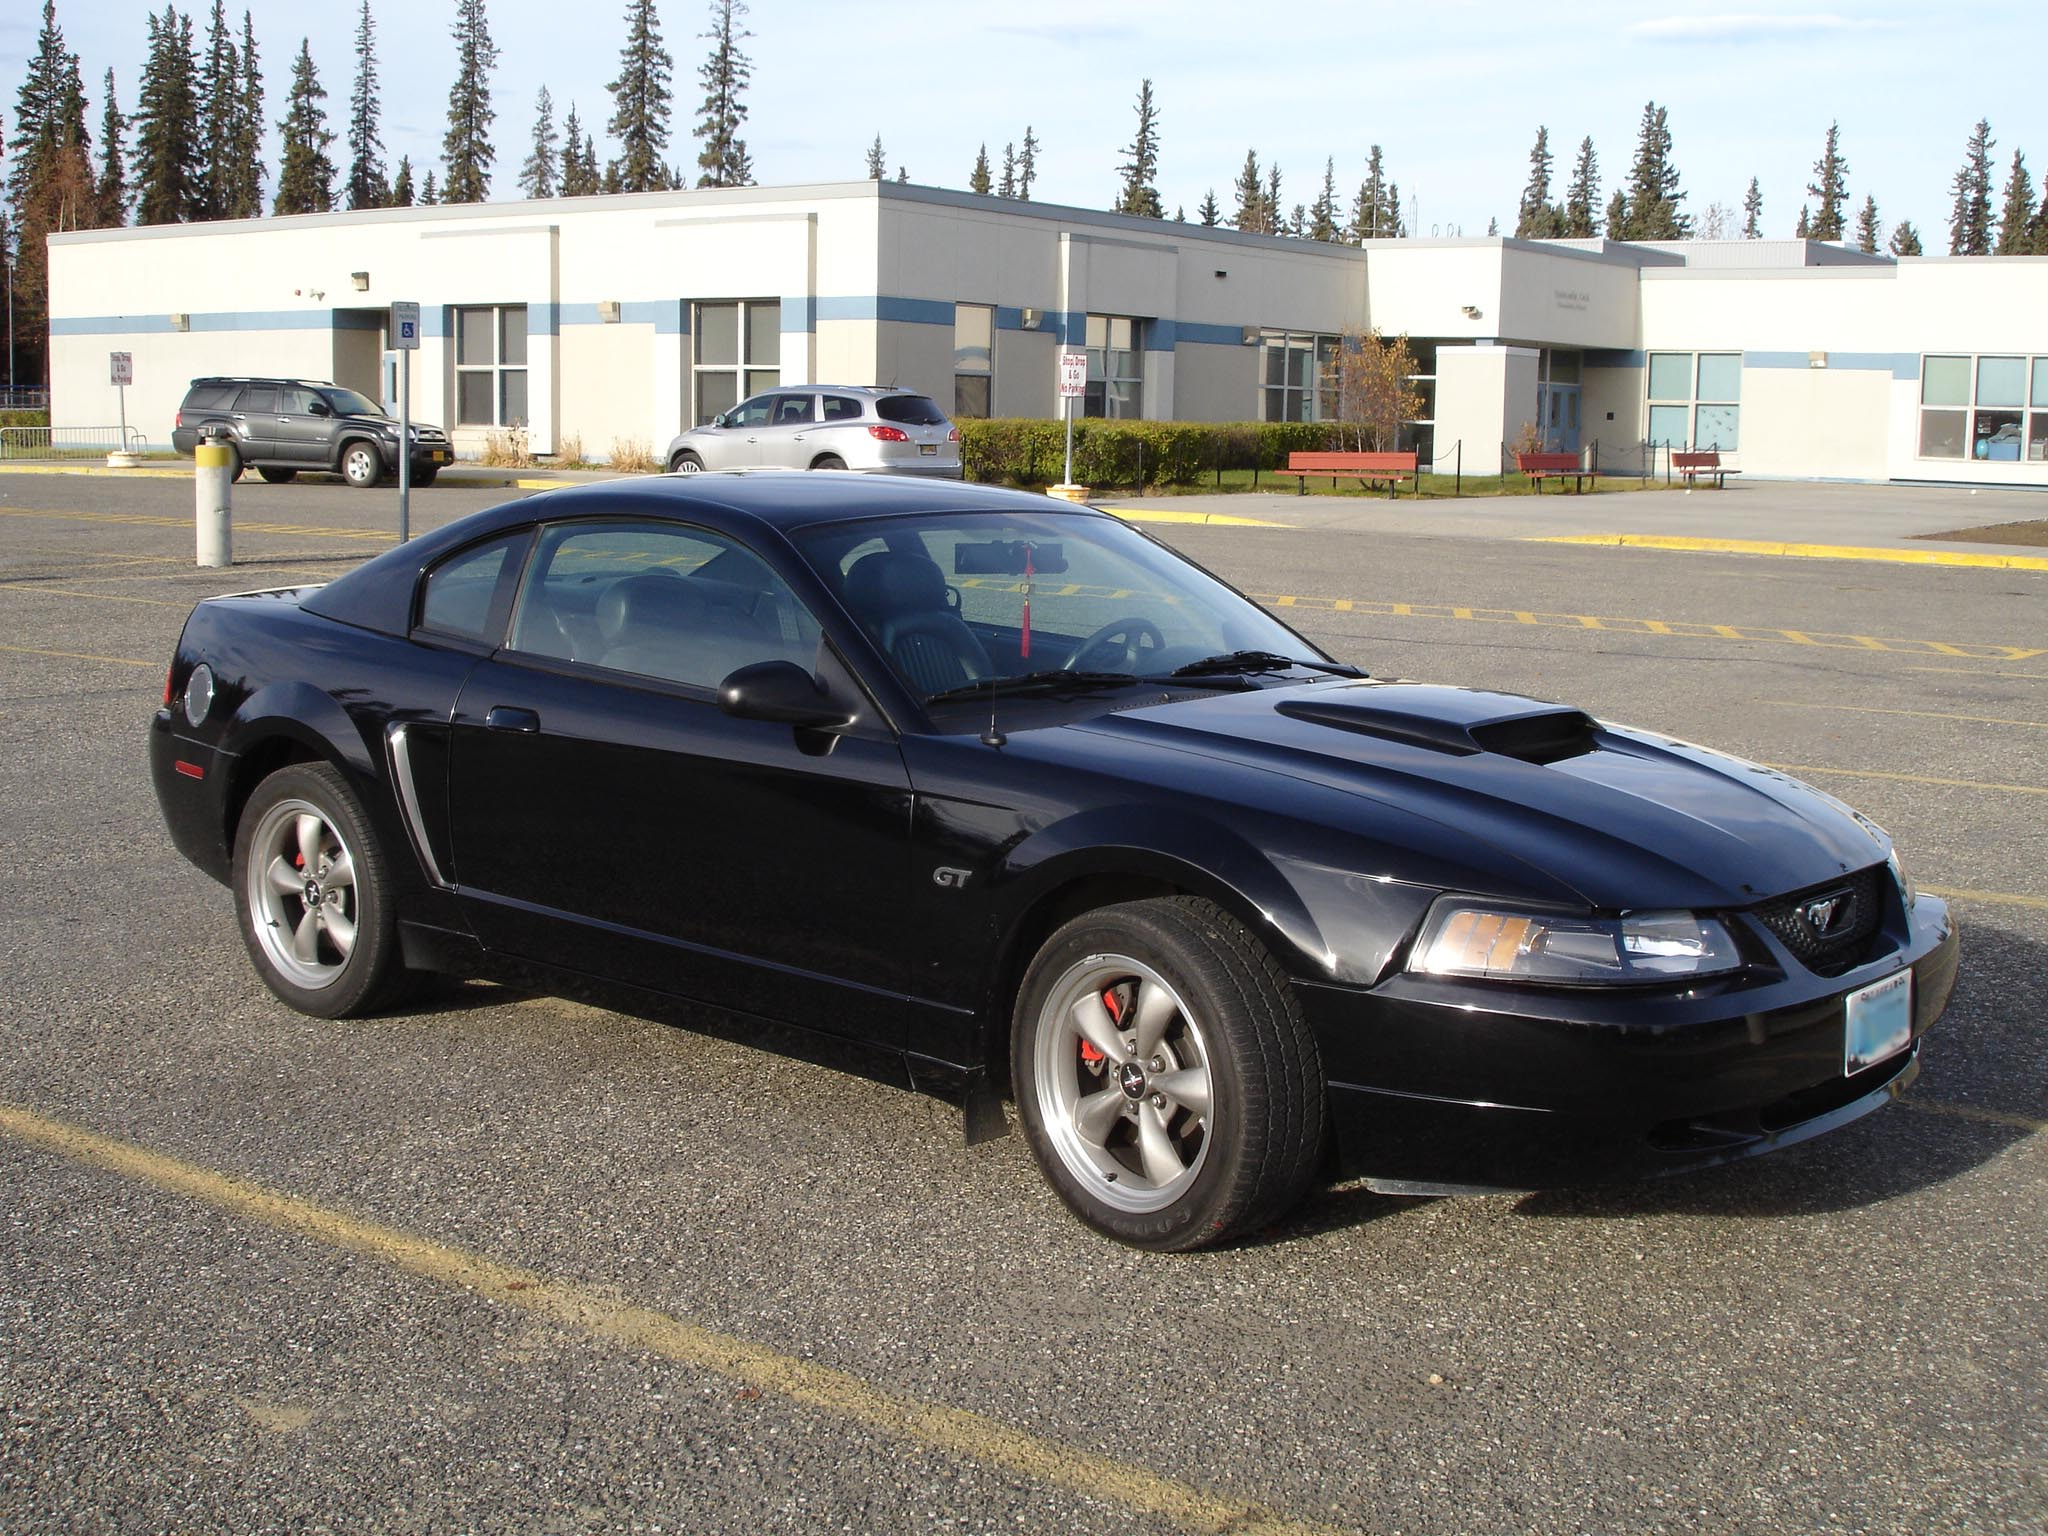 ... mustang 2001 ford 2001 mustang show custom 2001 mustang gt